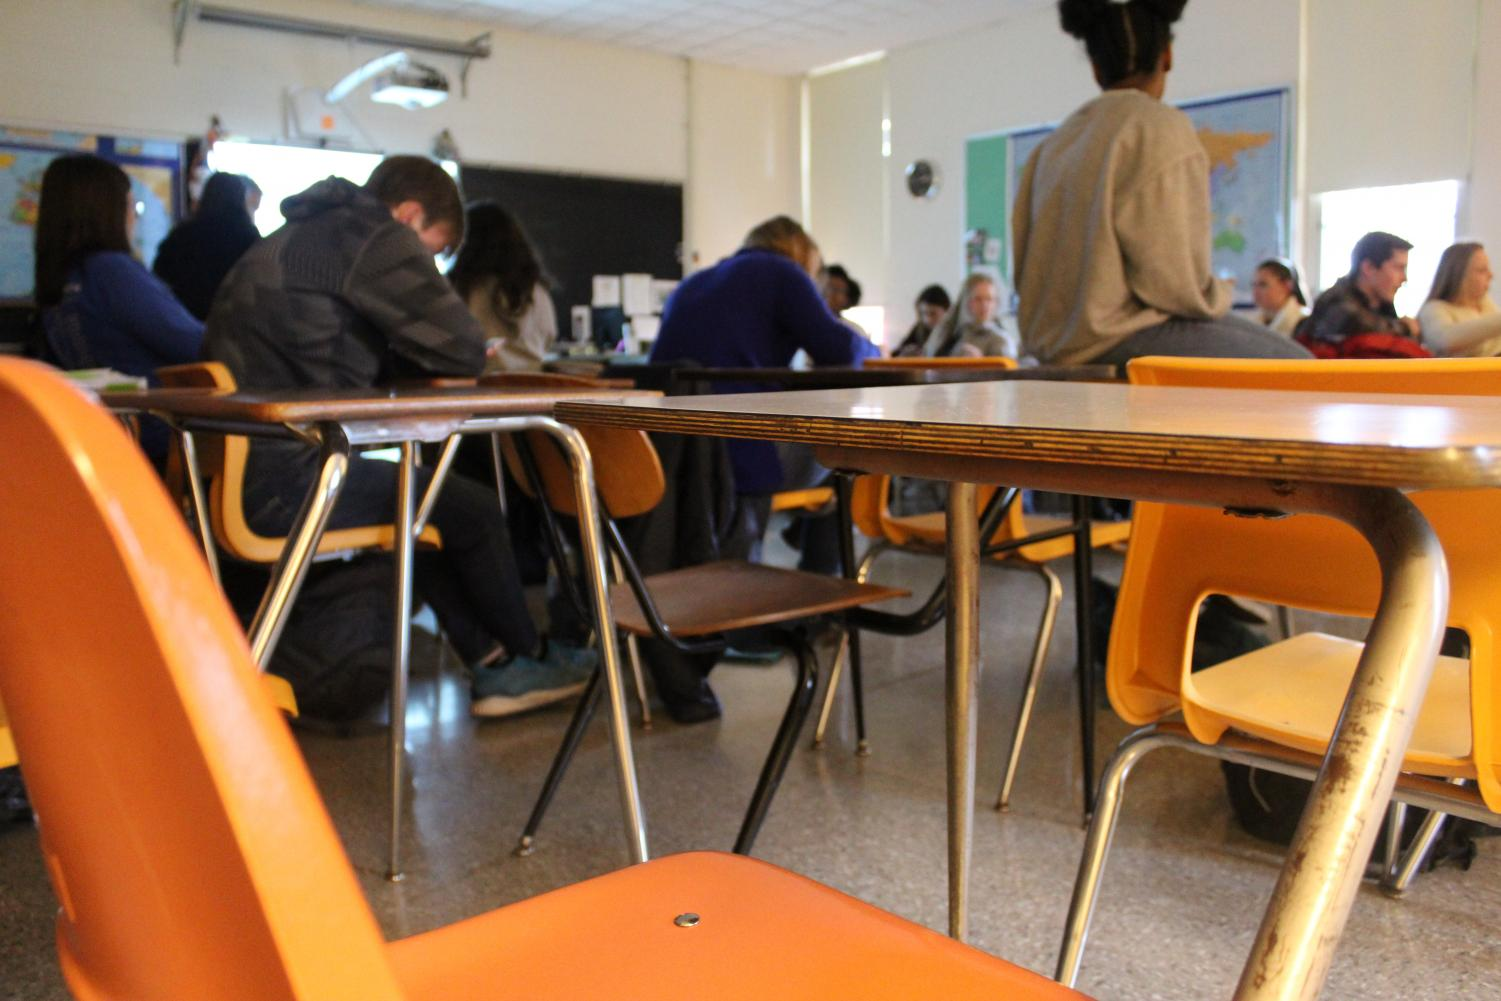 Empty seats. South has seen a drop in enrollment for the 2018-19 school year leaving residents wondering if there will be school closures in the near future.